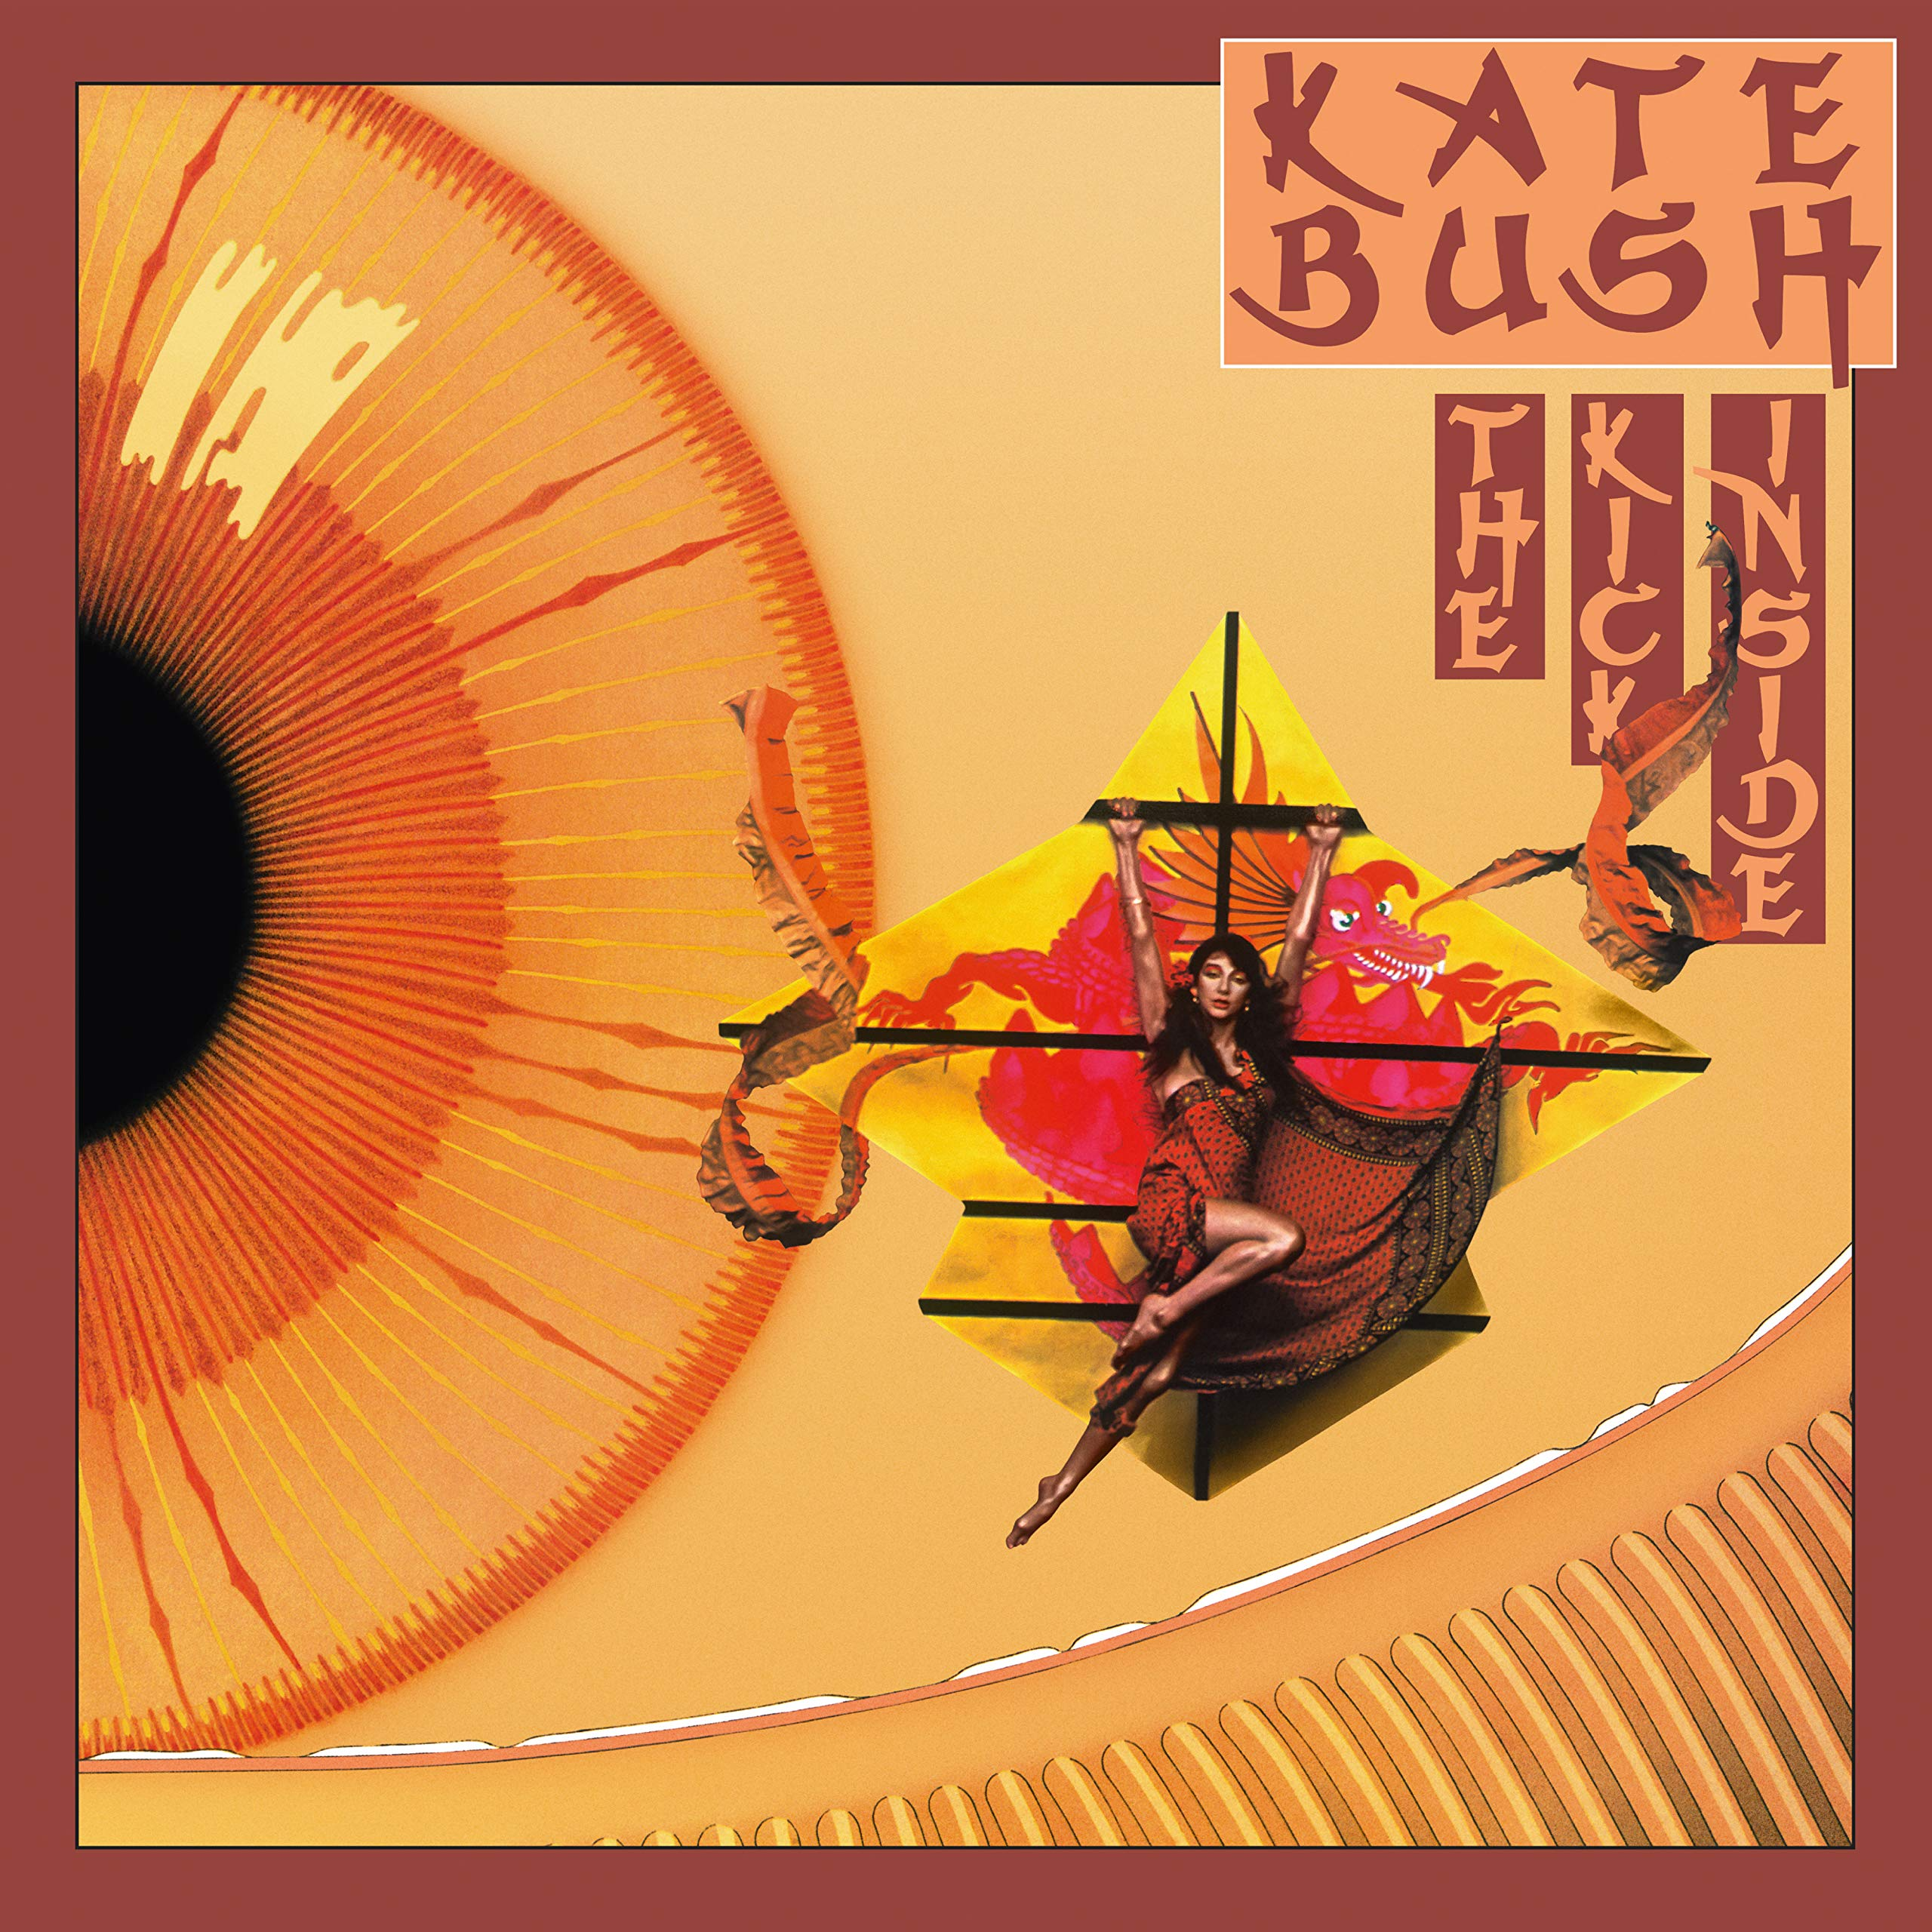 Vinilo : Kate Bush - Kick Inside (2018 Remaster) (LP Vinyl)